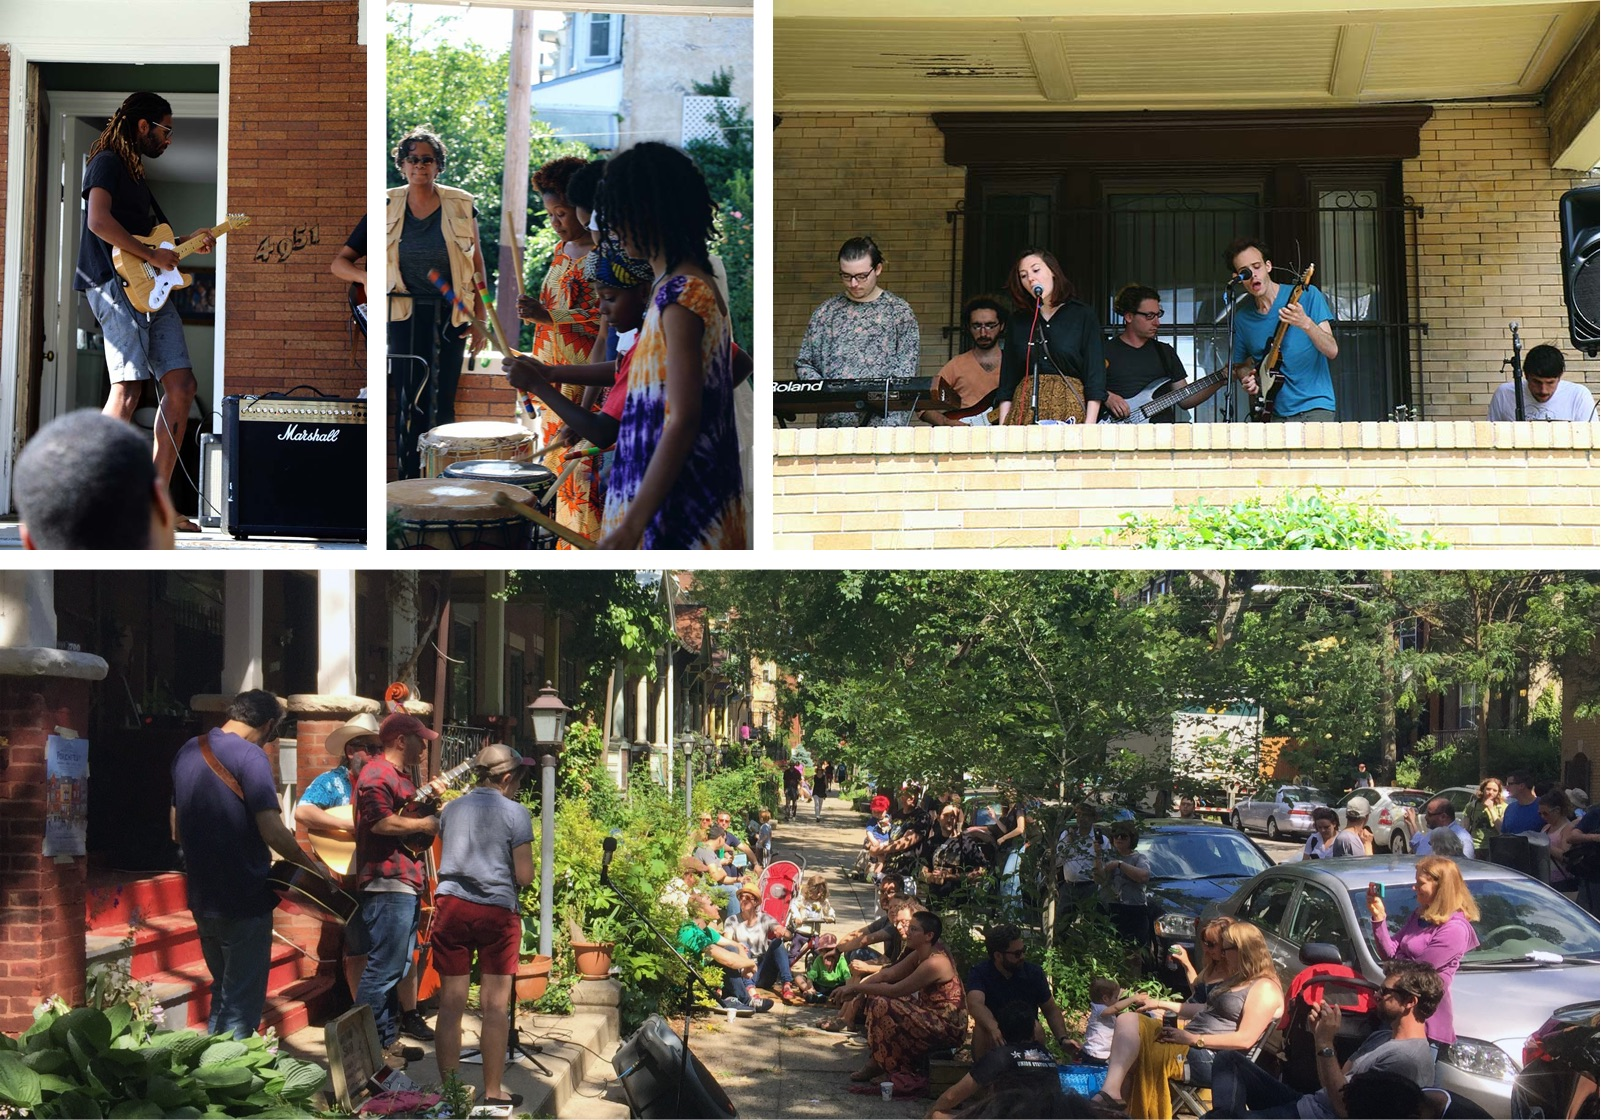 Collage of photos from Porchfest 2017; Man playing electric guitar, several women playing drums; a band playing instruments on a porch; a band playing on a porch and an audience sitting in chairs on the sidewalk